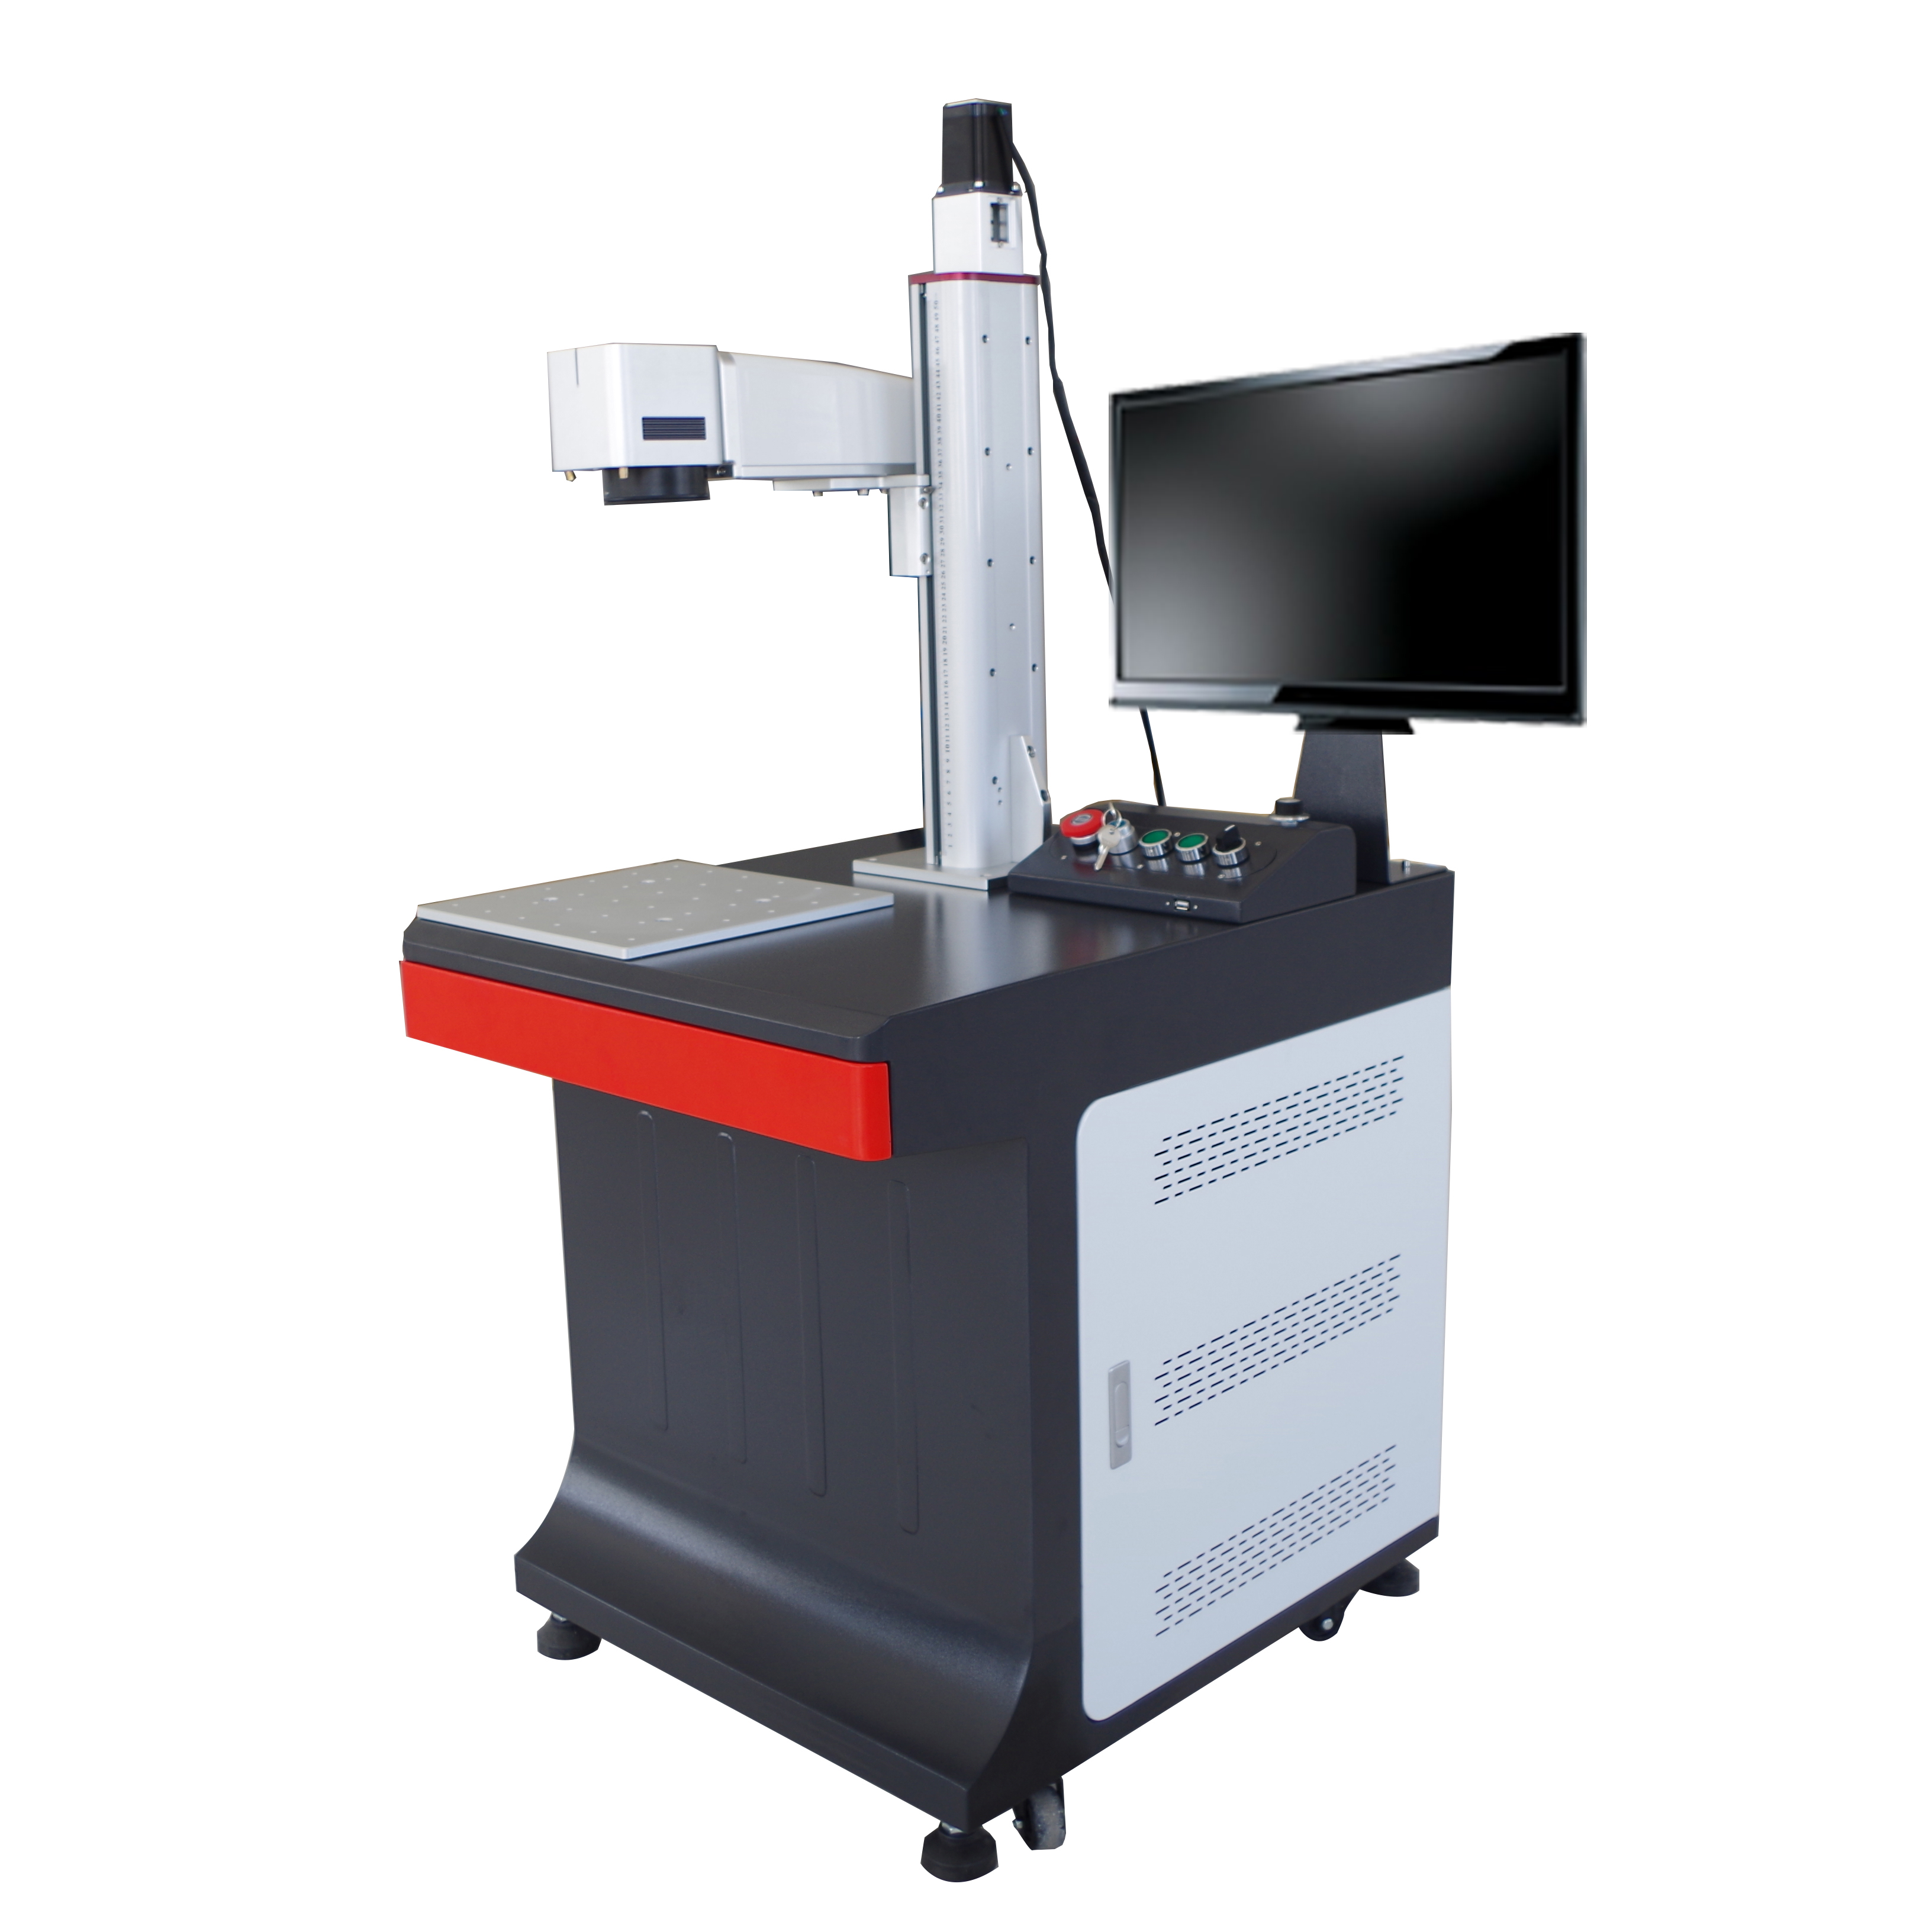 Factory Price Mopa Fiber <strong>Laser</strong> Machine <strong>Laser</strong> Marking/Engraving/Cutting Machine for Jewelry Gold Sliver